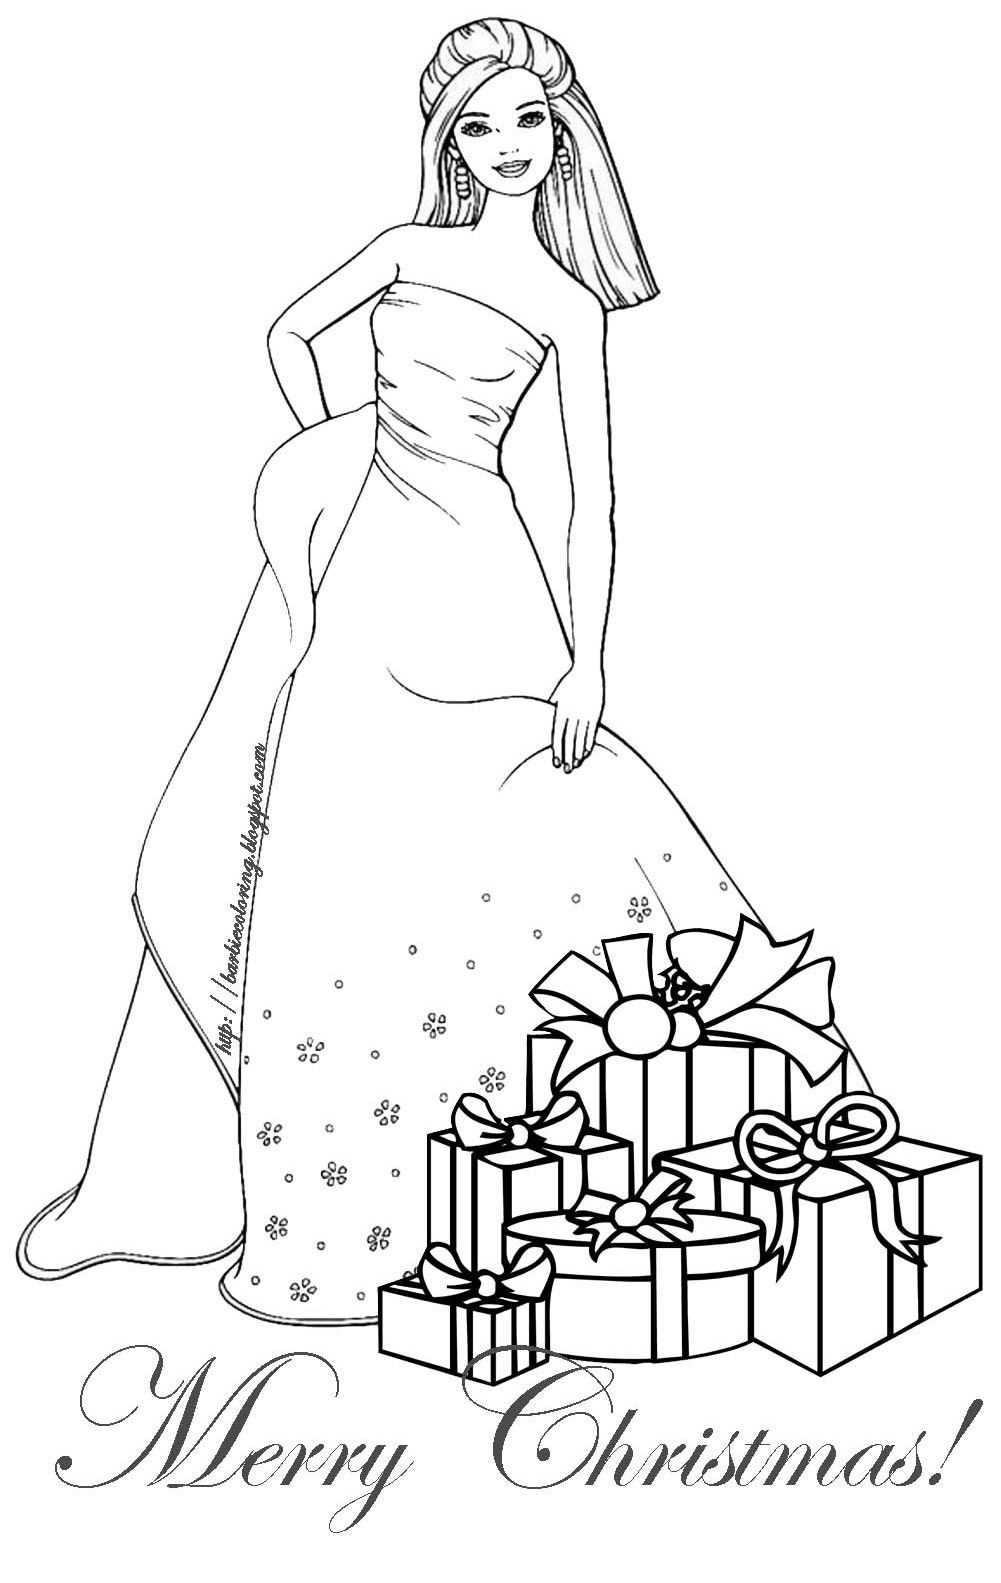 Top Barbie Christmas Carol Coloring Pages | Top Free ...